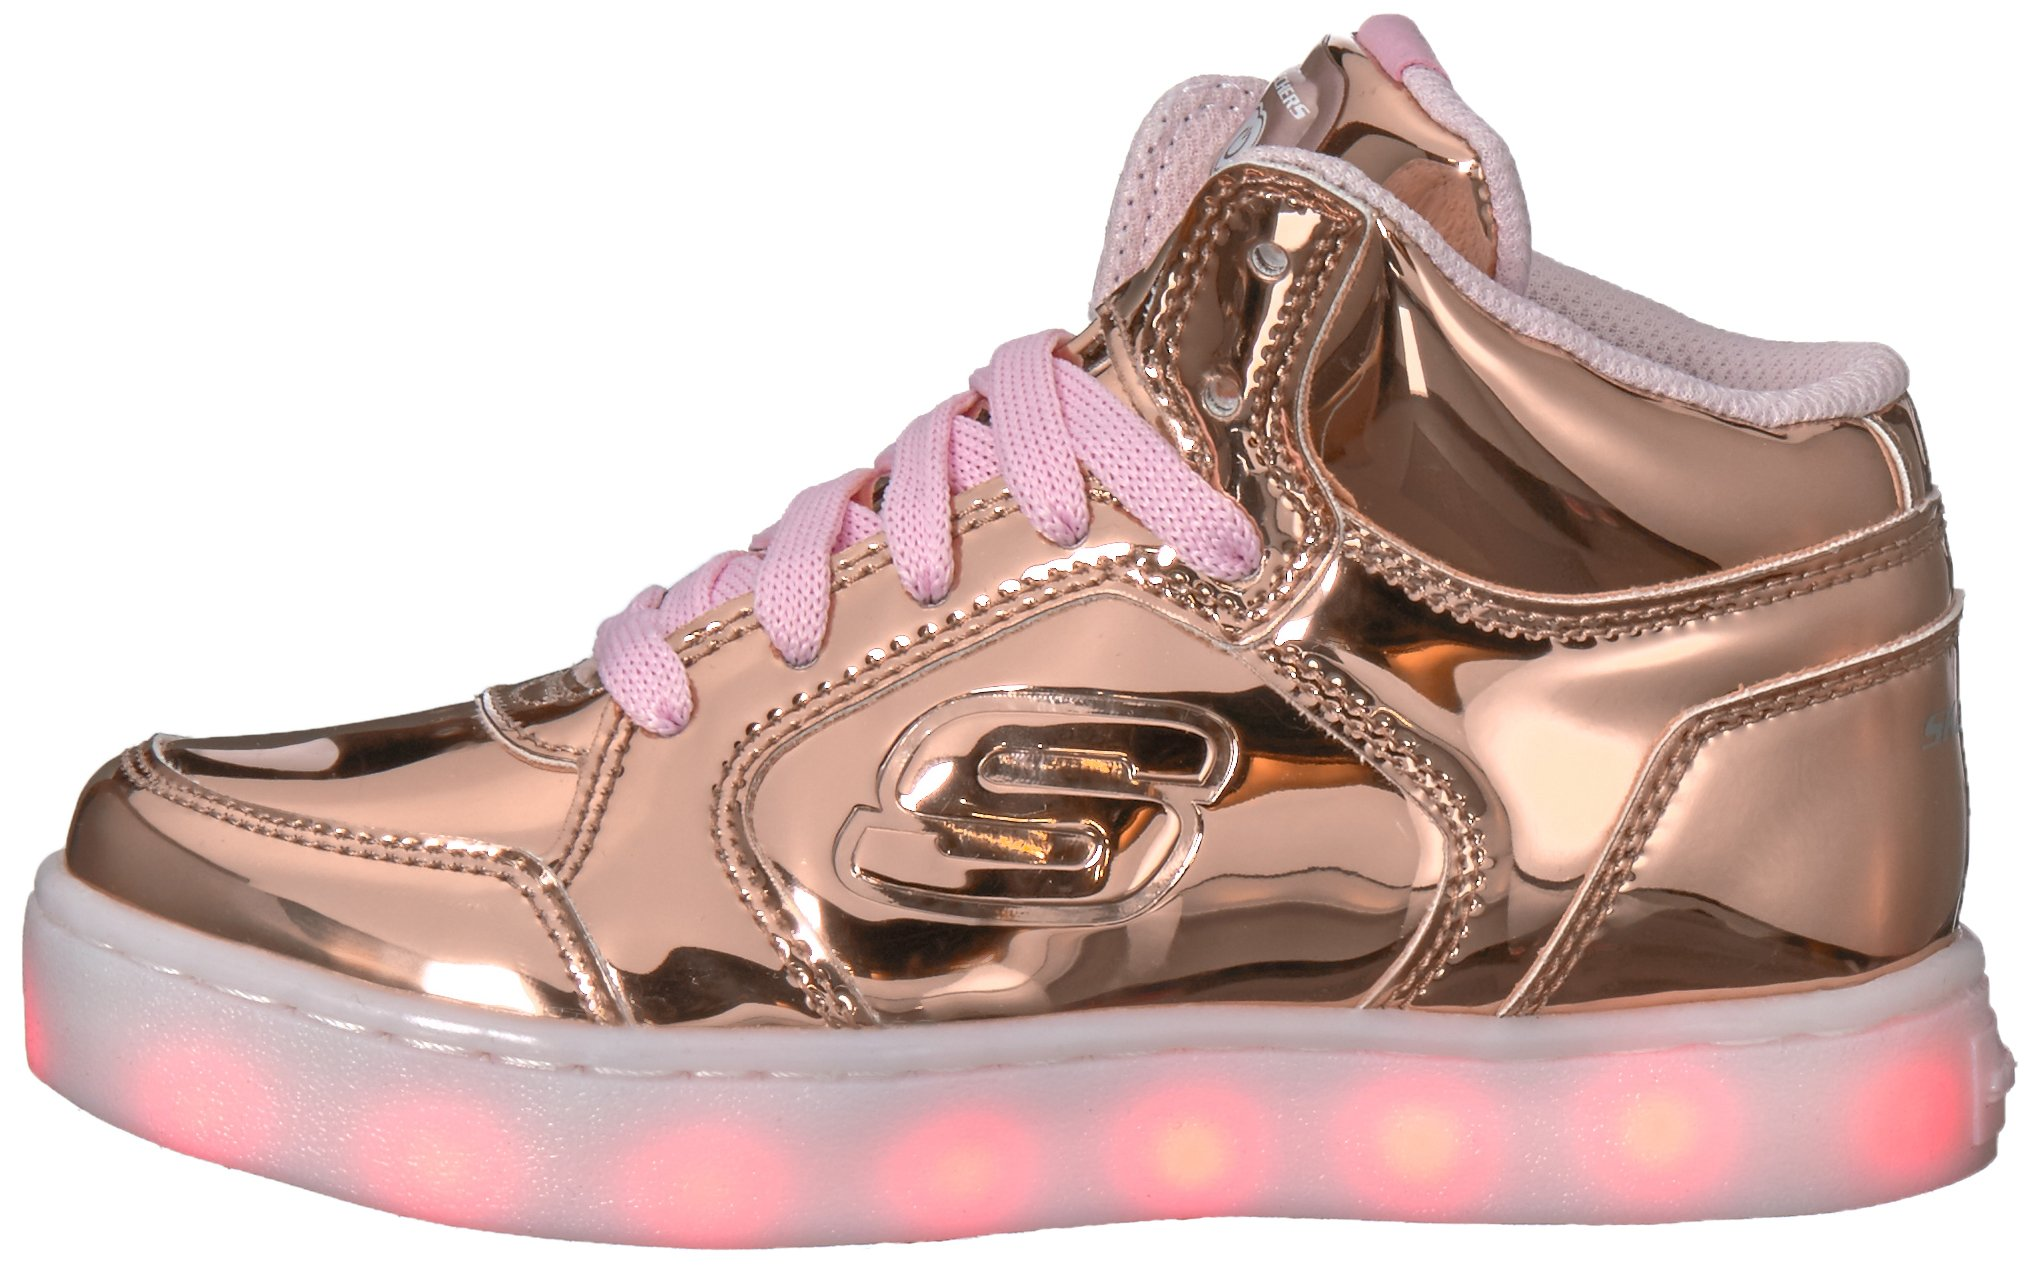 Skechers Kids Energy Lights-Dance-N-Dazzle Sneaker,Rose Gold,1 M US Little Kid by Skechers (Image #5)